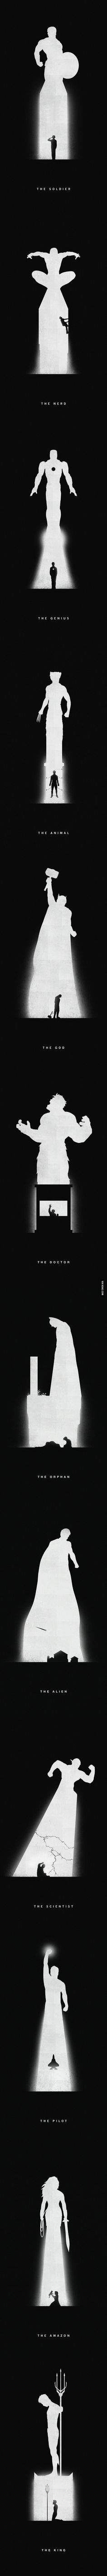 Very Cool Superhero Artwork.. I love minimalism...